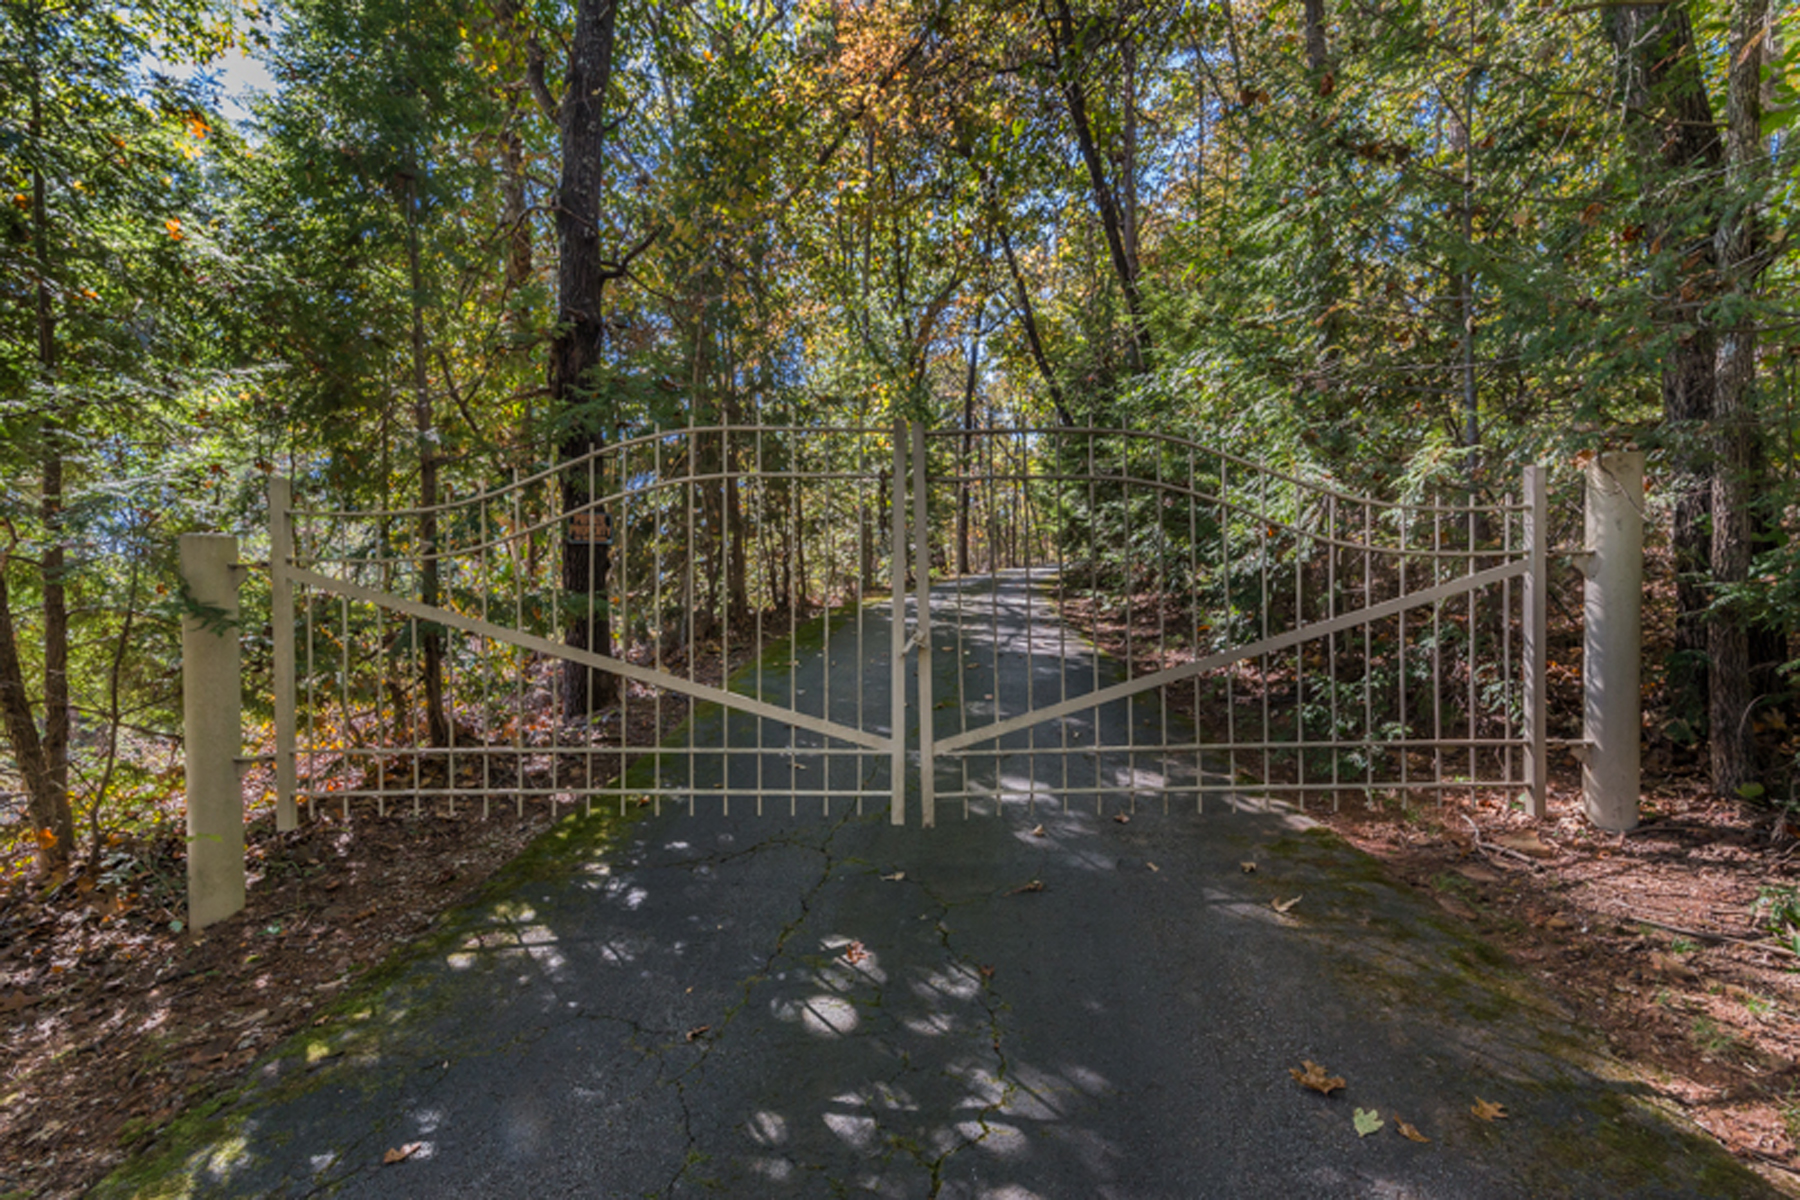 Single Family Home for Sale at Gated Estate With Mountain Views On 30 Acres 2018 Highway 184 Toccoa, Georgia, 30577 United States